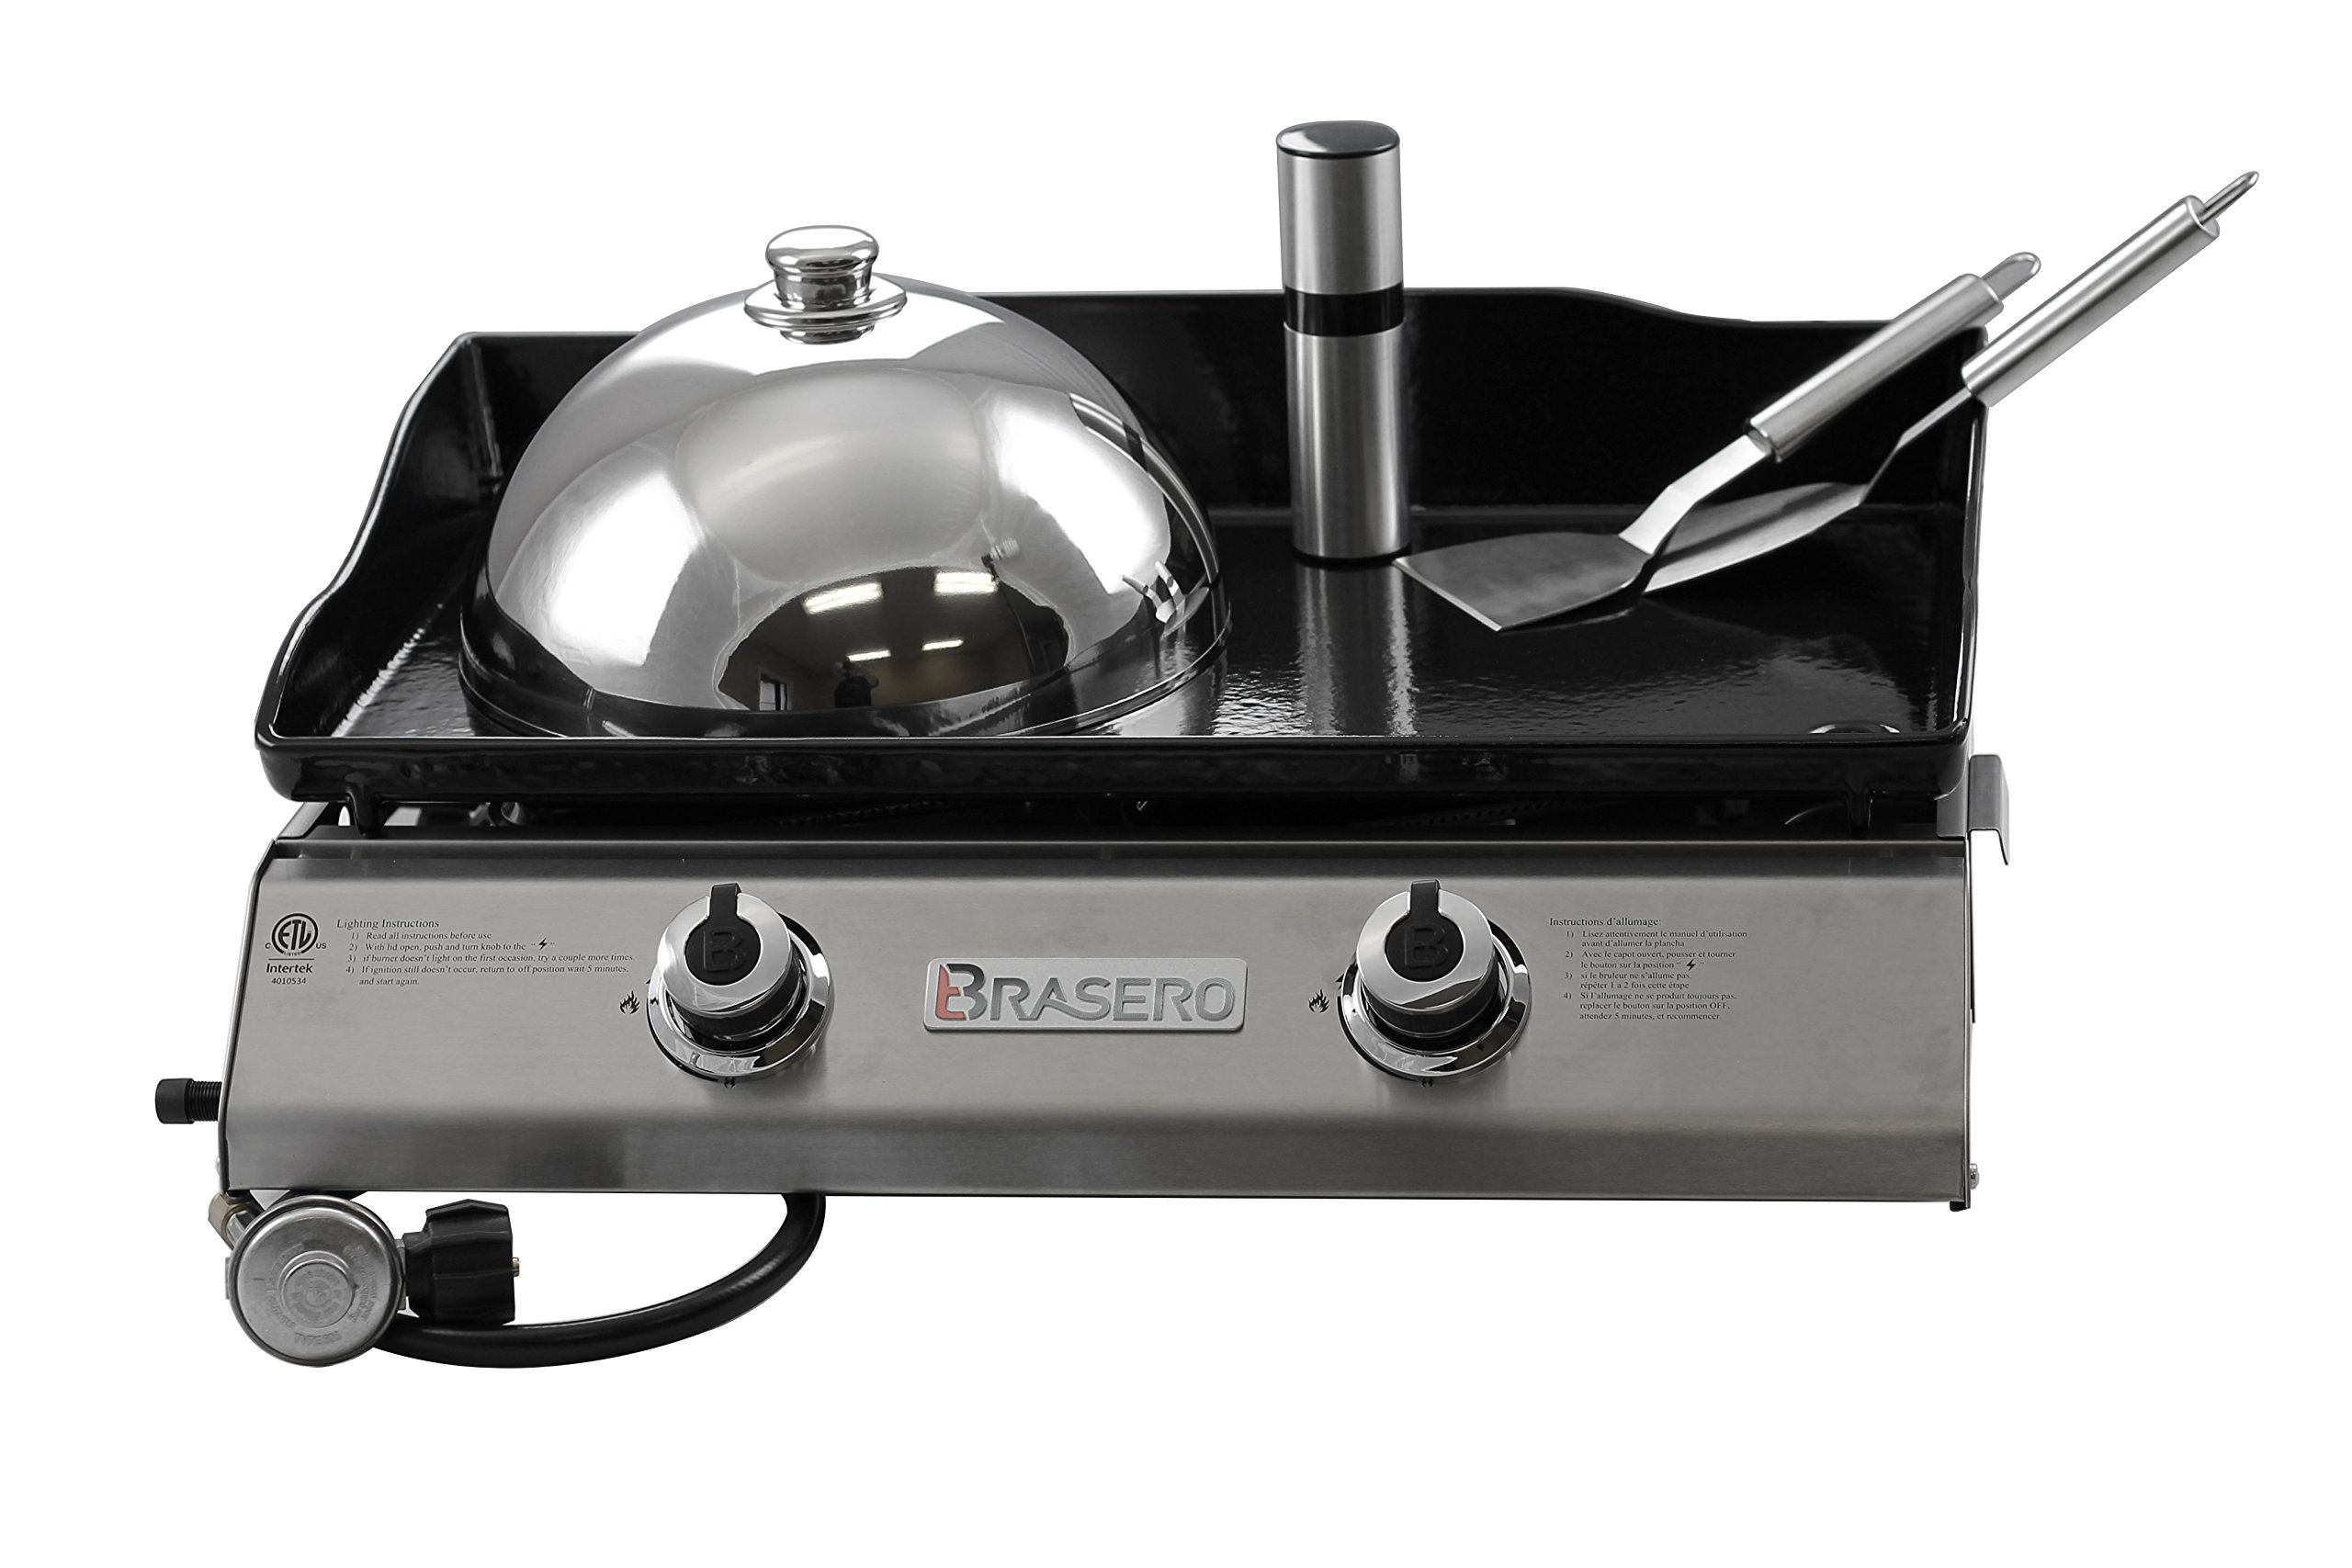 Brasero  Portable 26 inch outdoor Flat top Gas griddle -2 burners-Stainless steel Body-Heavy duty Enameled Cast iron Griddle by Brasero